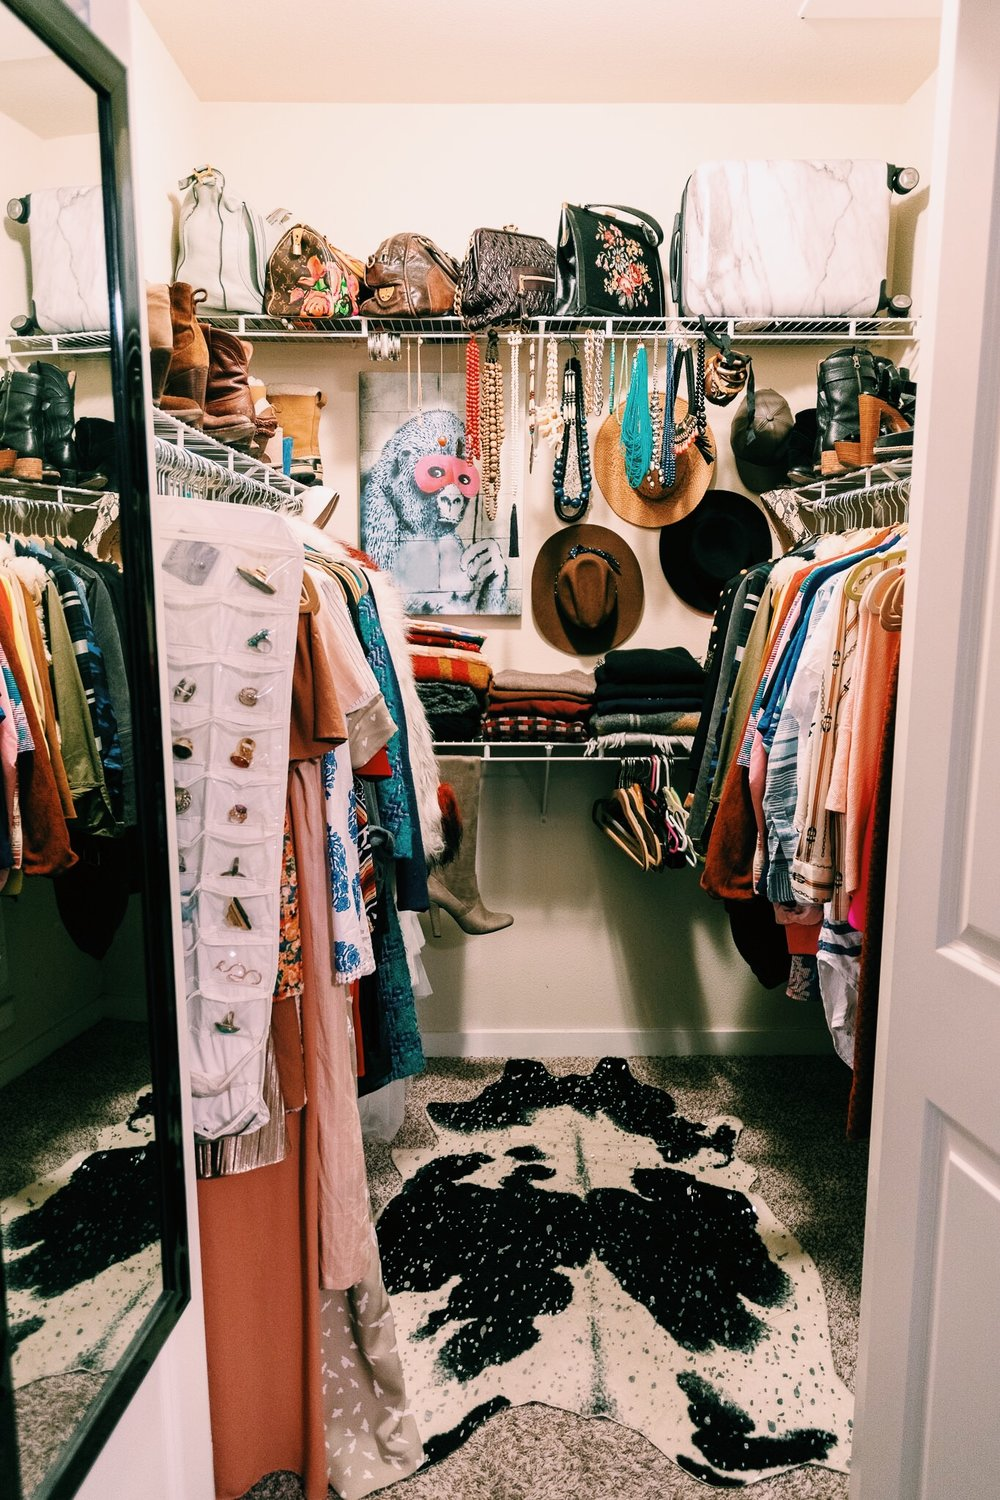 To fully enjoy your style, you need to use 100% of what's in your closet to make outfits that feel authentic and perfectly you.